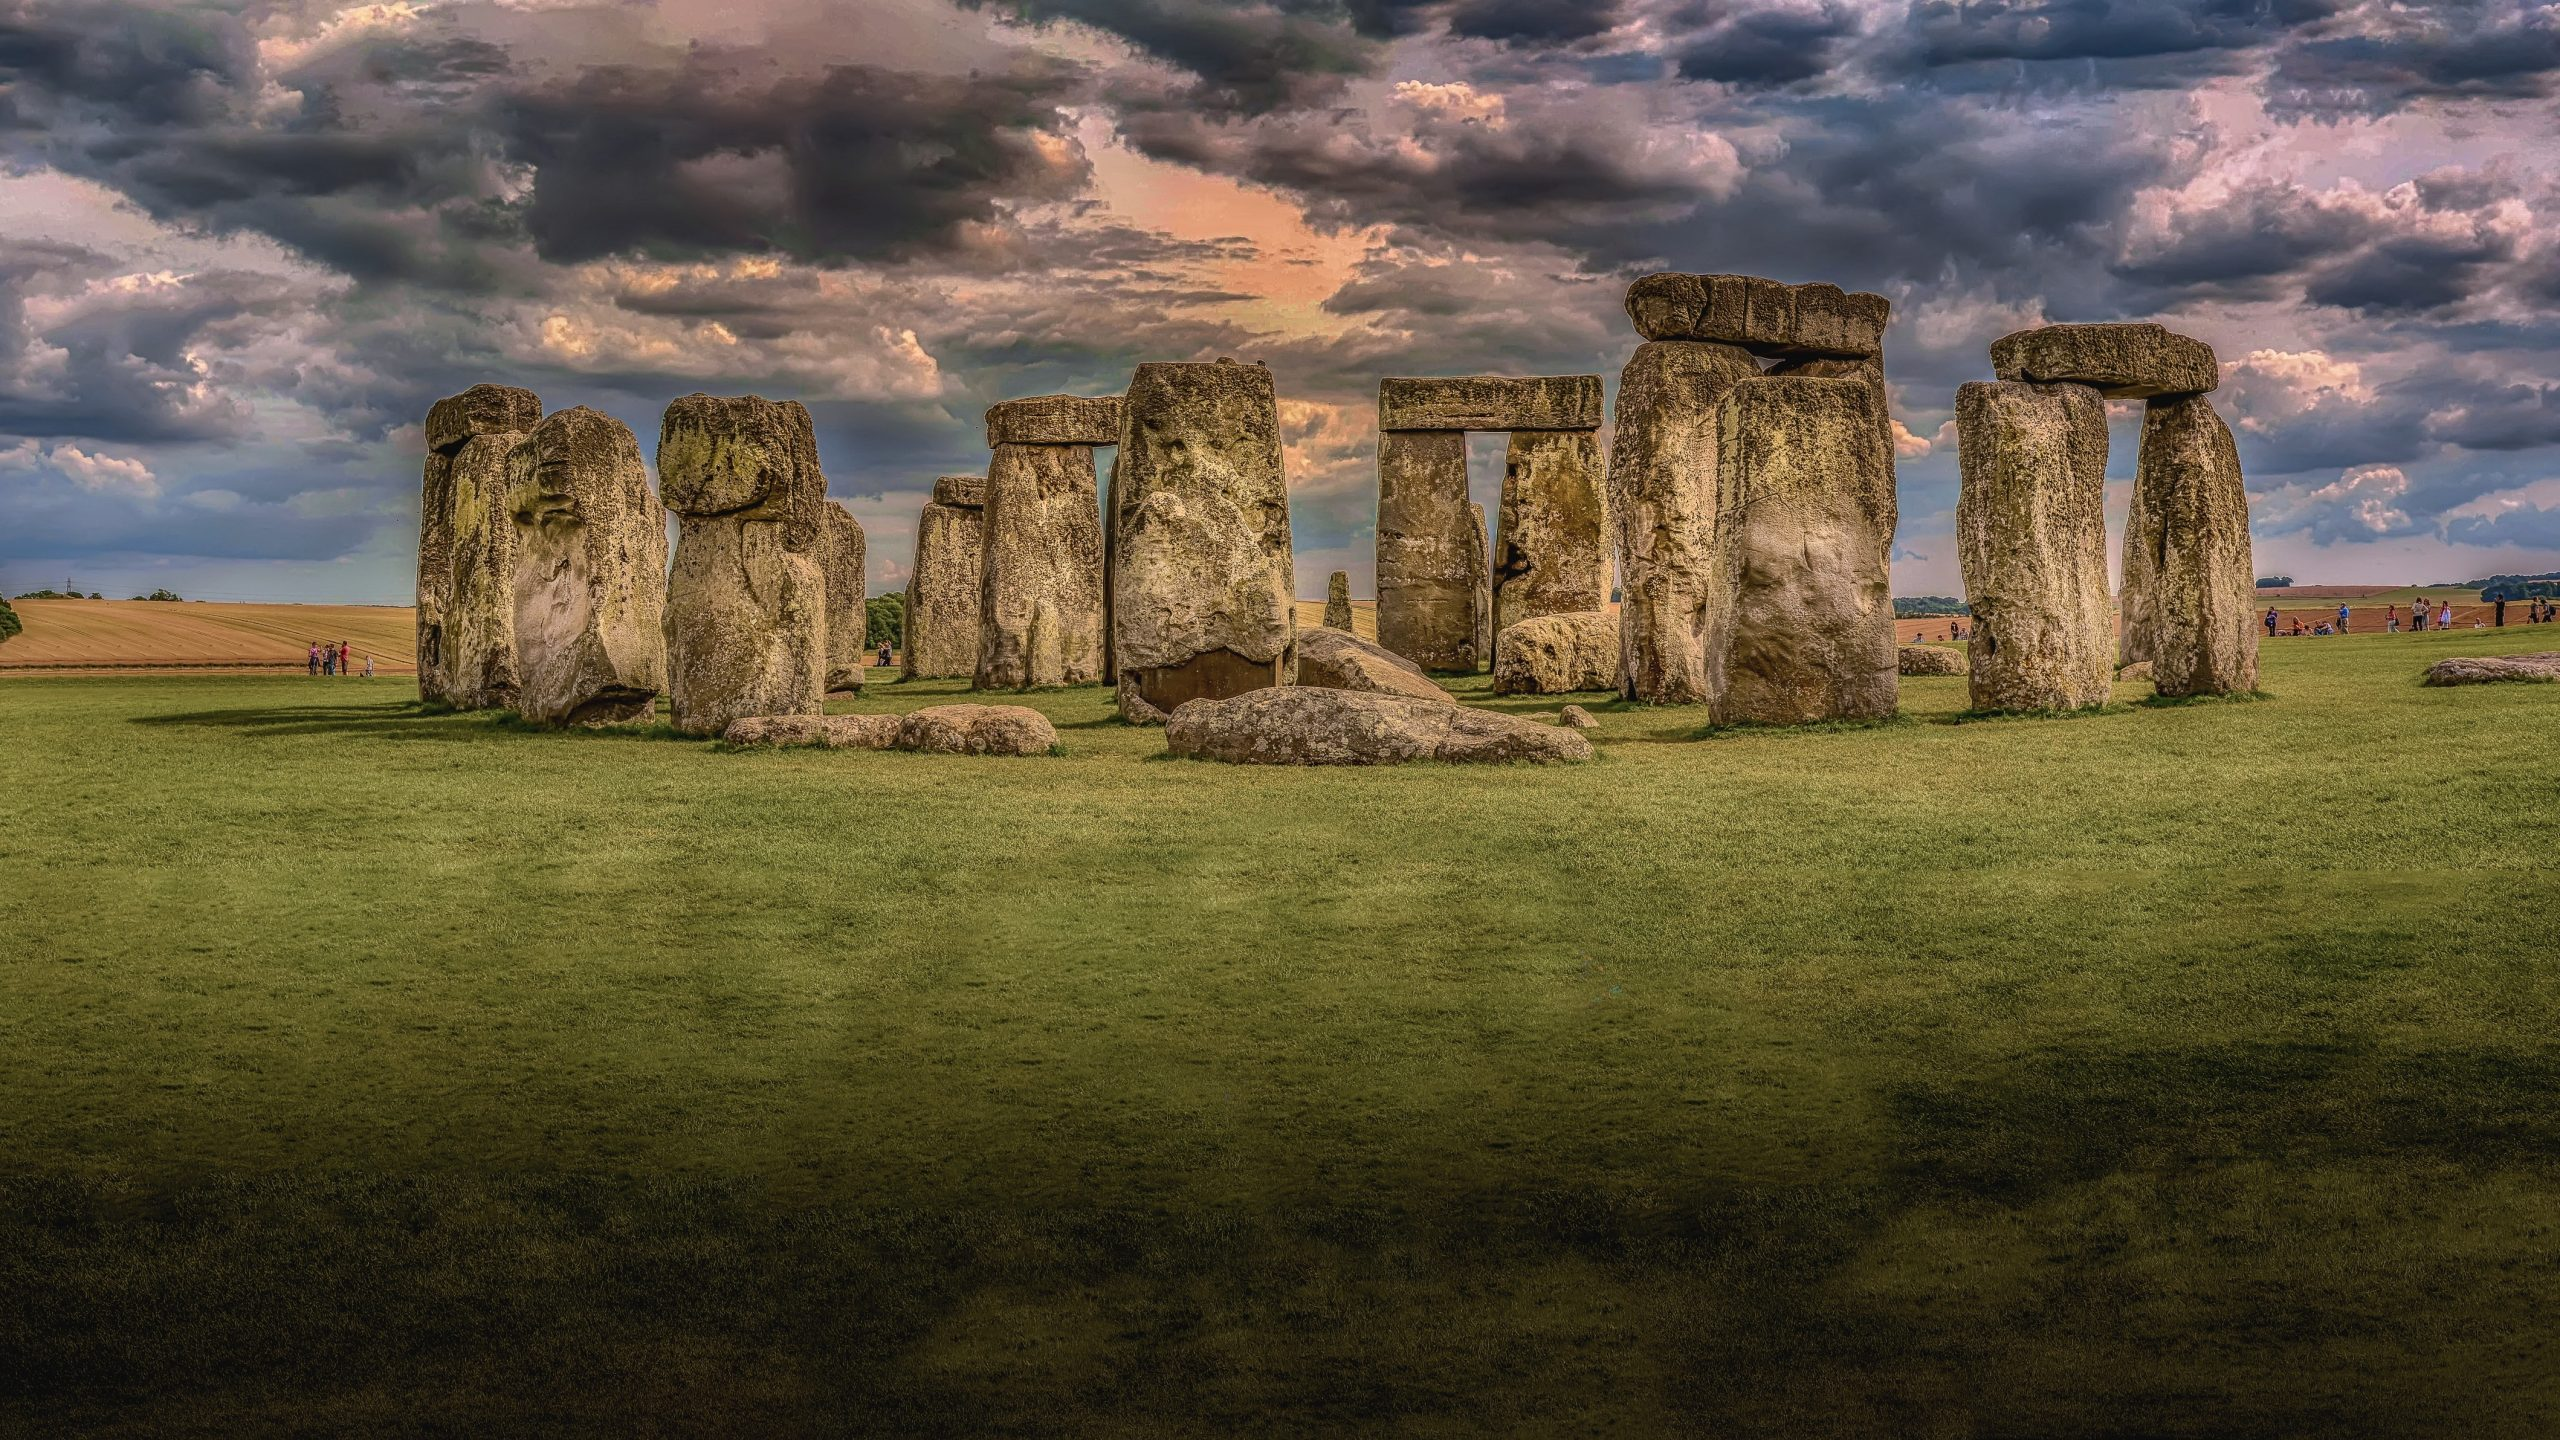 Cute Hd Mobile Wallpaper Download Stonehenge 4k Uhd Wallpaper